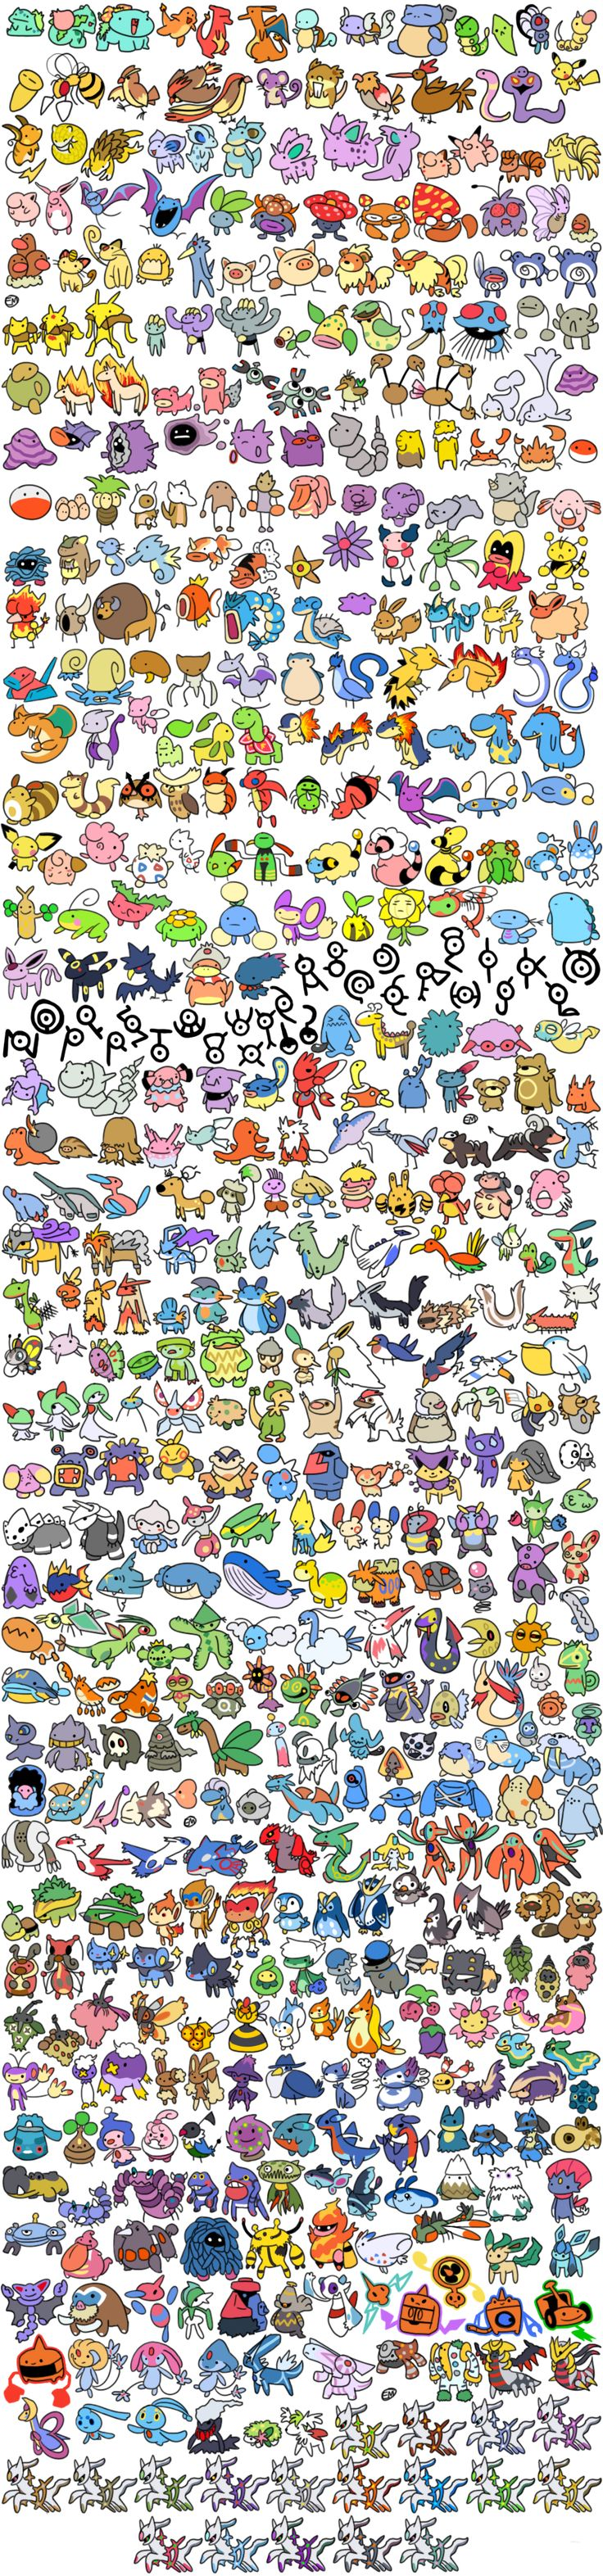 yes, I'm a nerd... but look at these adorable POKEMON!